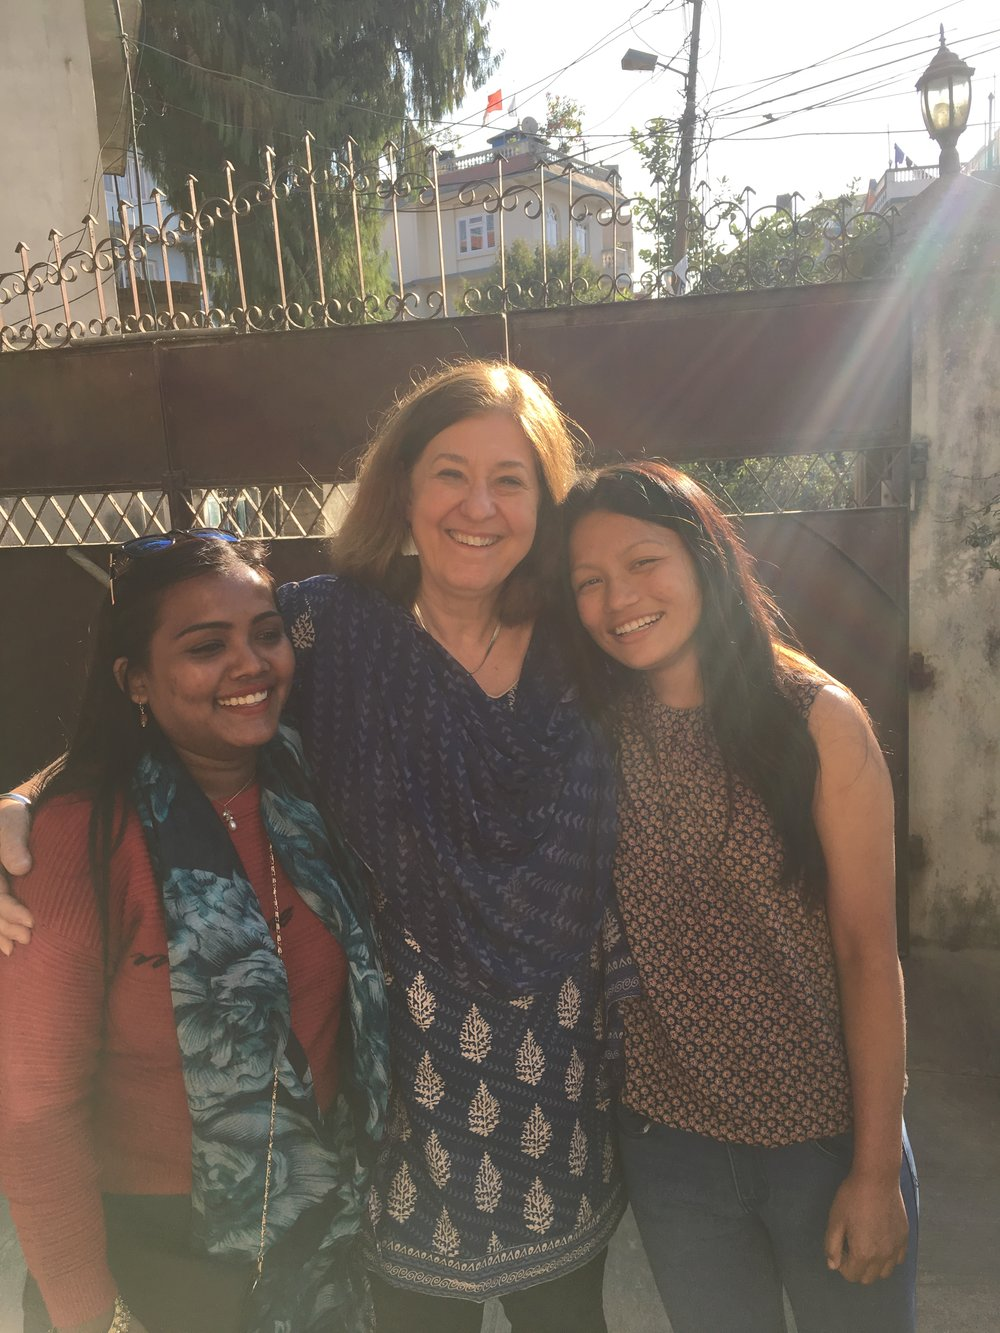 Sponsor Nancy Williger hugs both her sponsored girls!